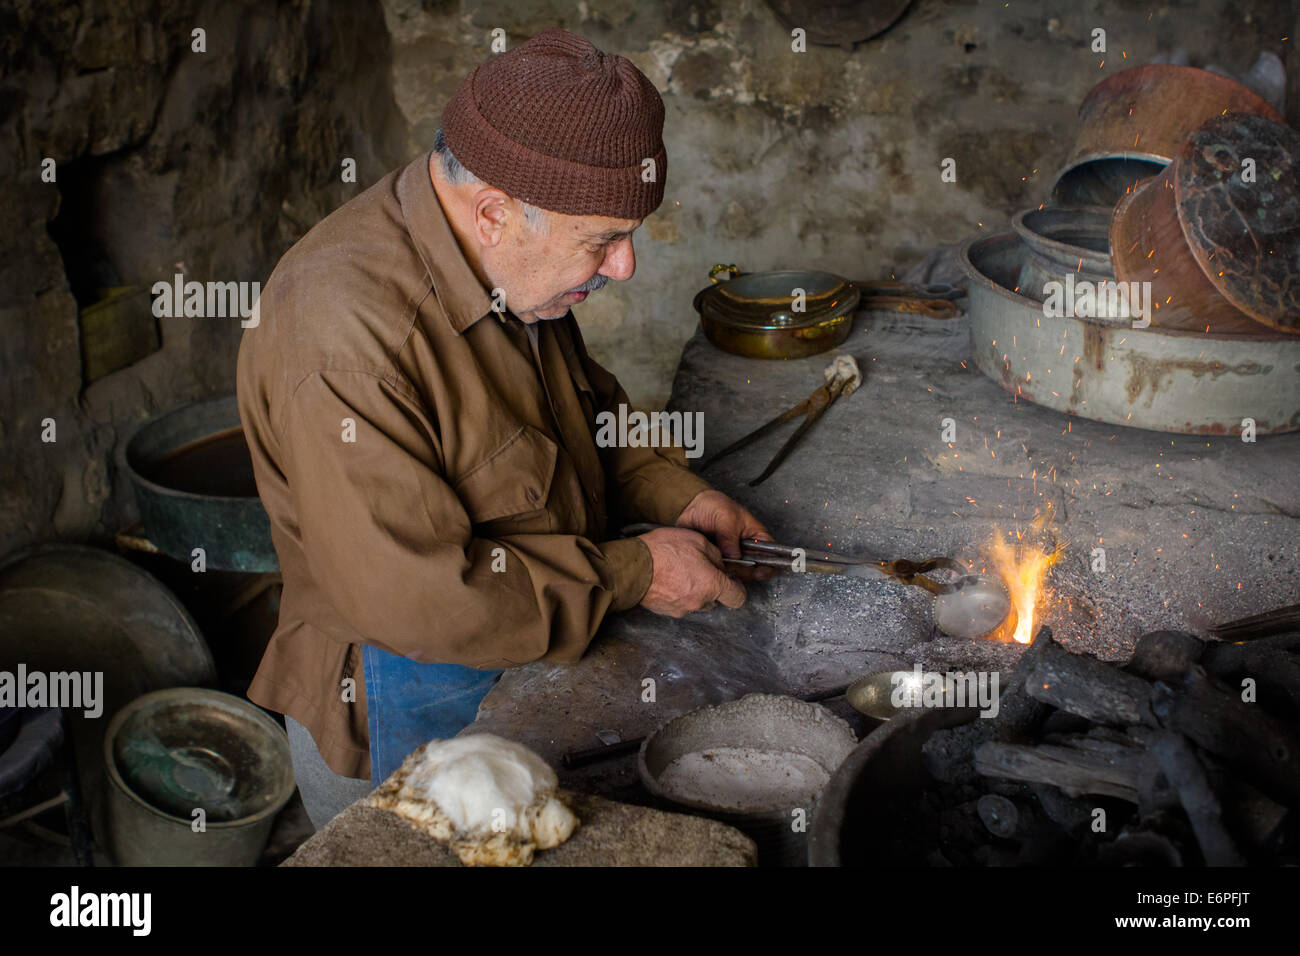 An old traditional coppersmith at work in his workplace, in the city of Mardin, Southeastern Anatolia, Turkey. Model - Stock Image